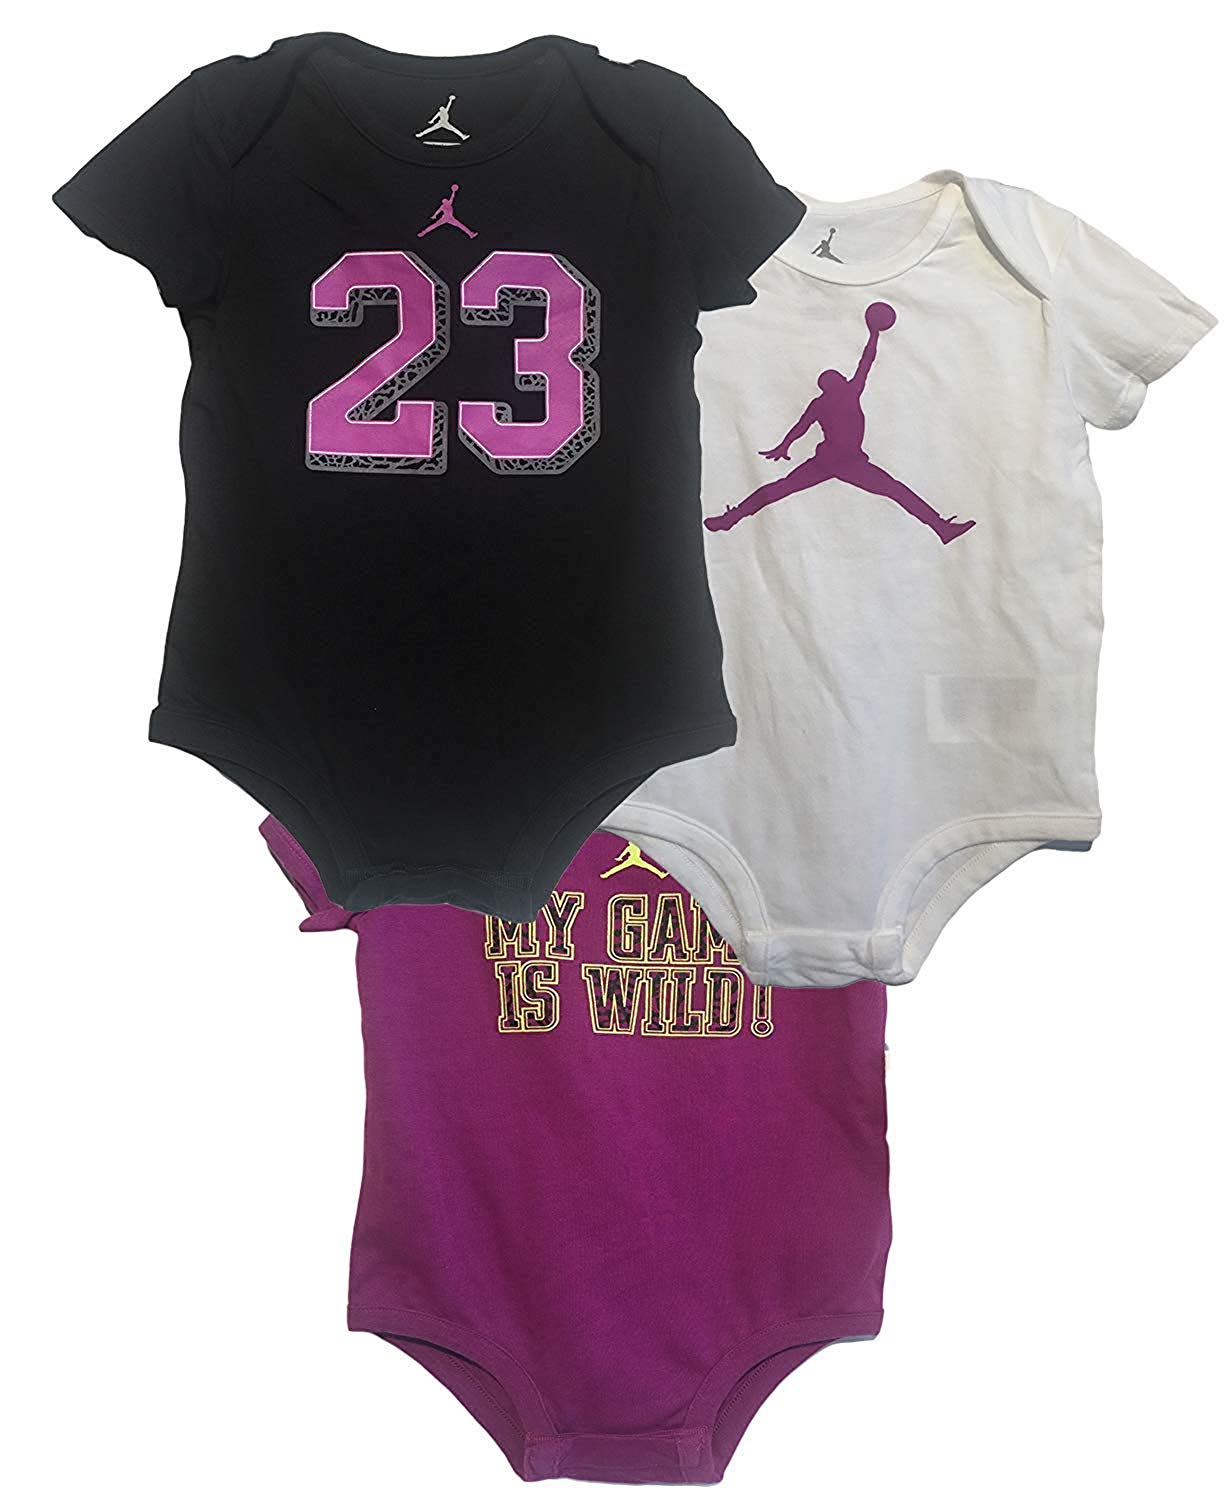 472329fd7 Baby Girls: Air Jordan Infant 3PC Bodysuit Set - Baby Clothes, Baby ...